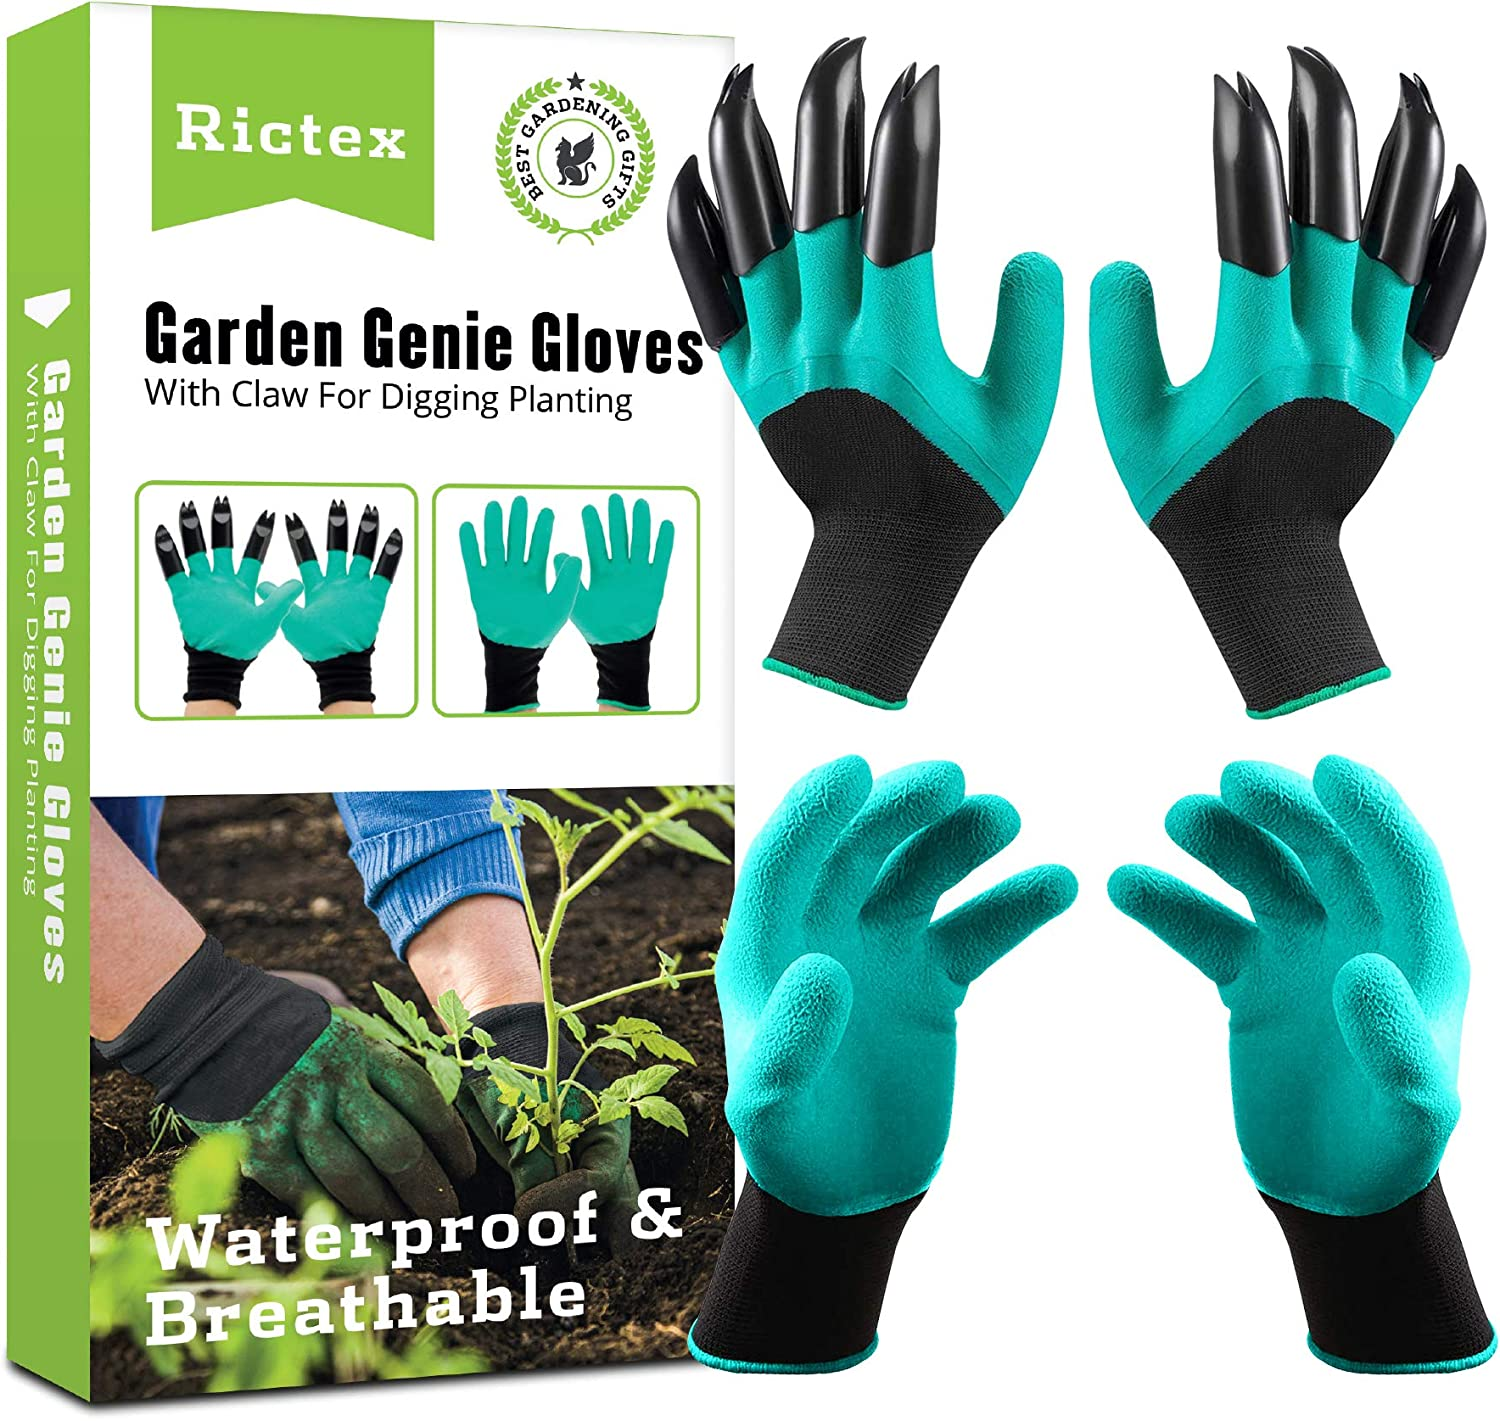 Rictex Garden Genie Gloves with Claws, Waterproof Gloves For Digging and Planting, Gardening Tool for Women and Men,2 Pairs